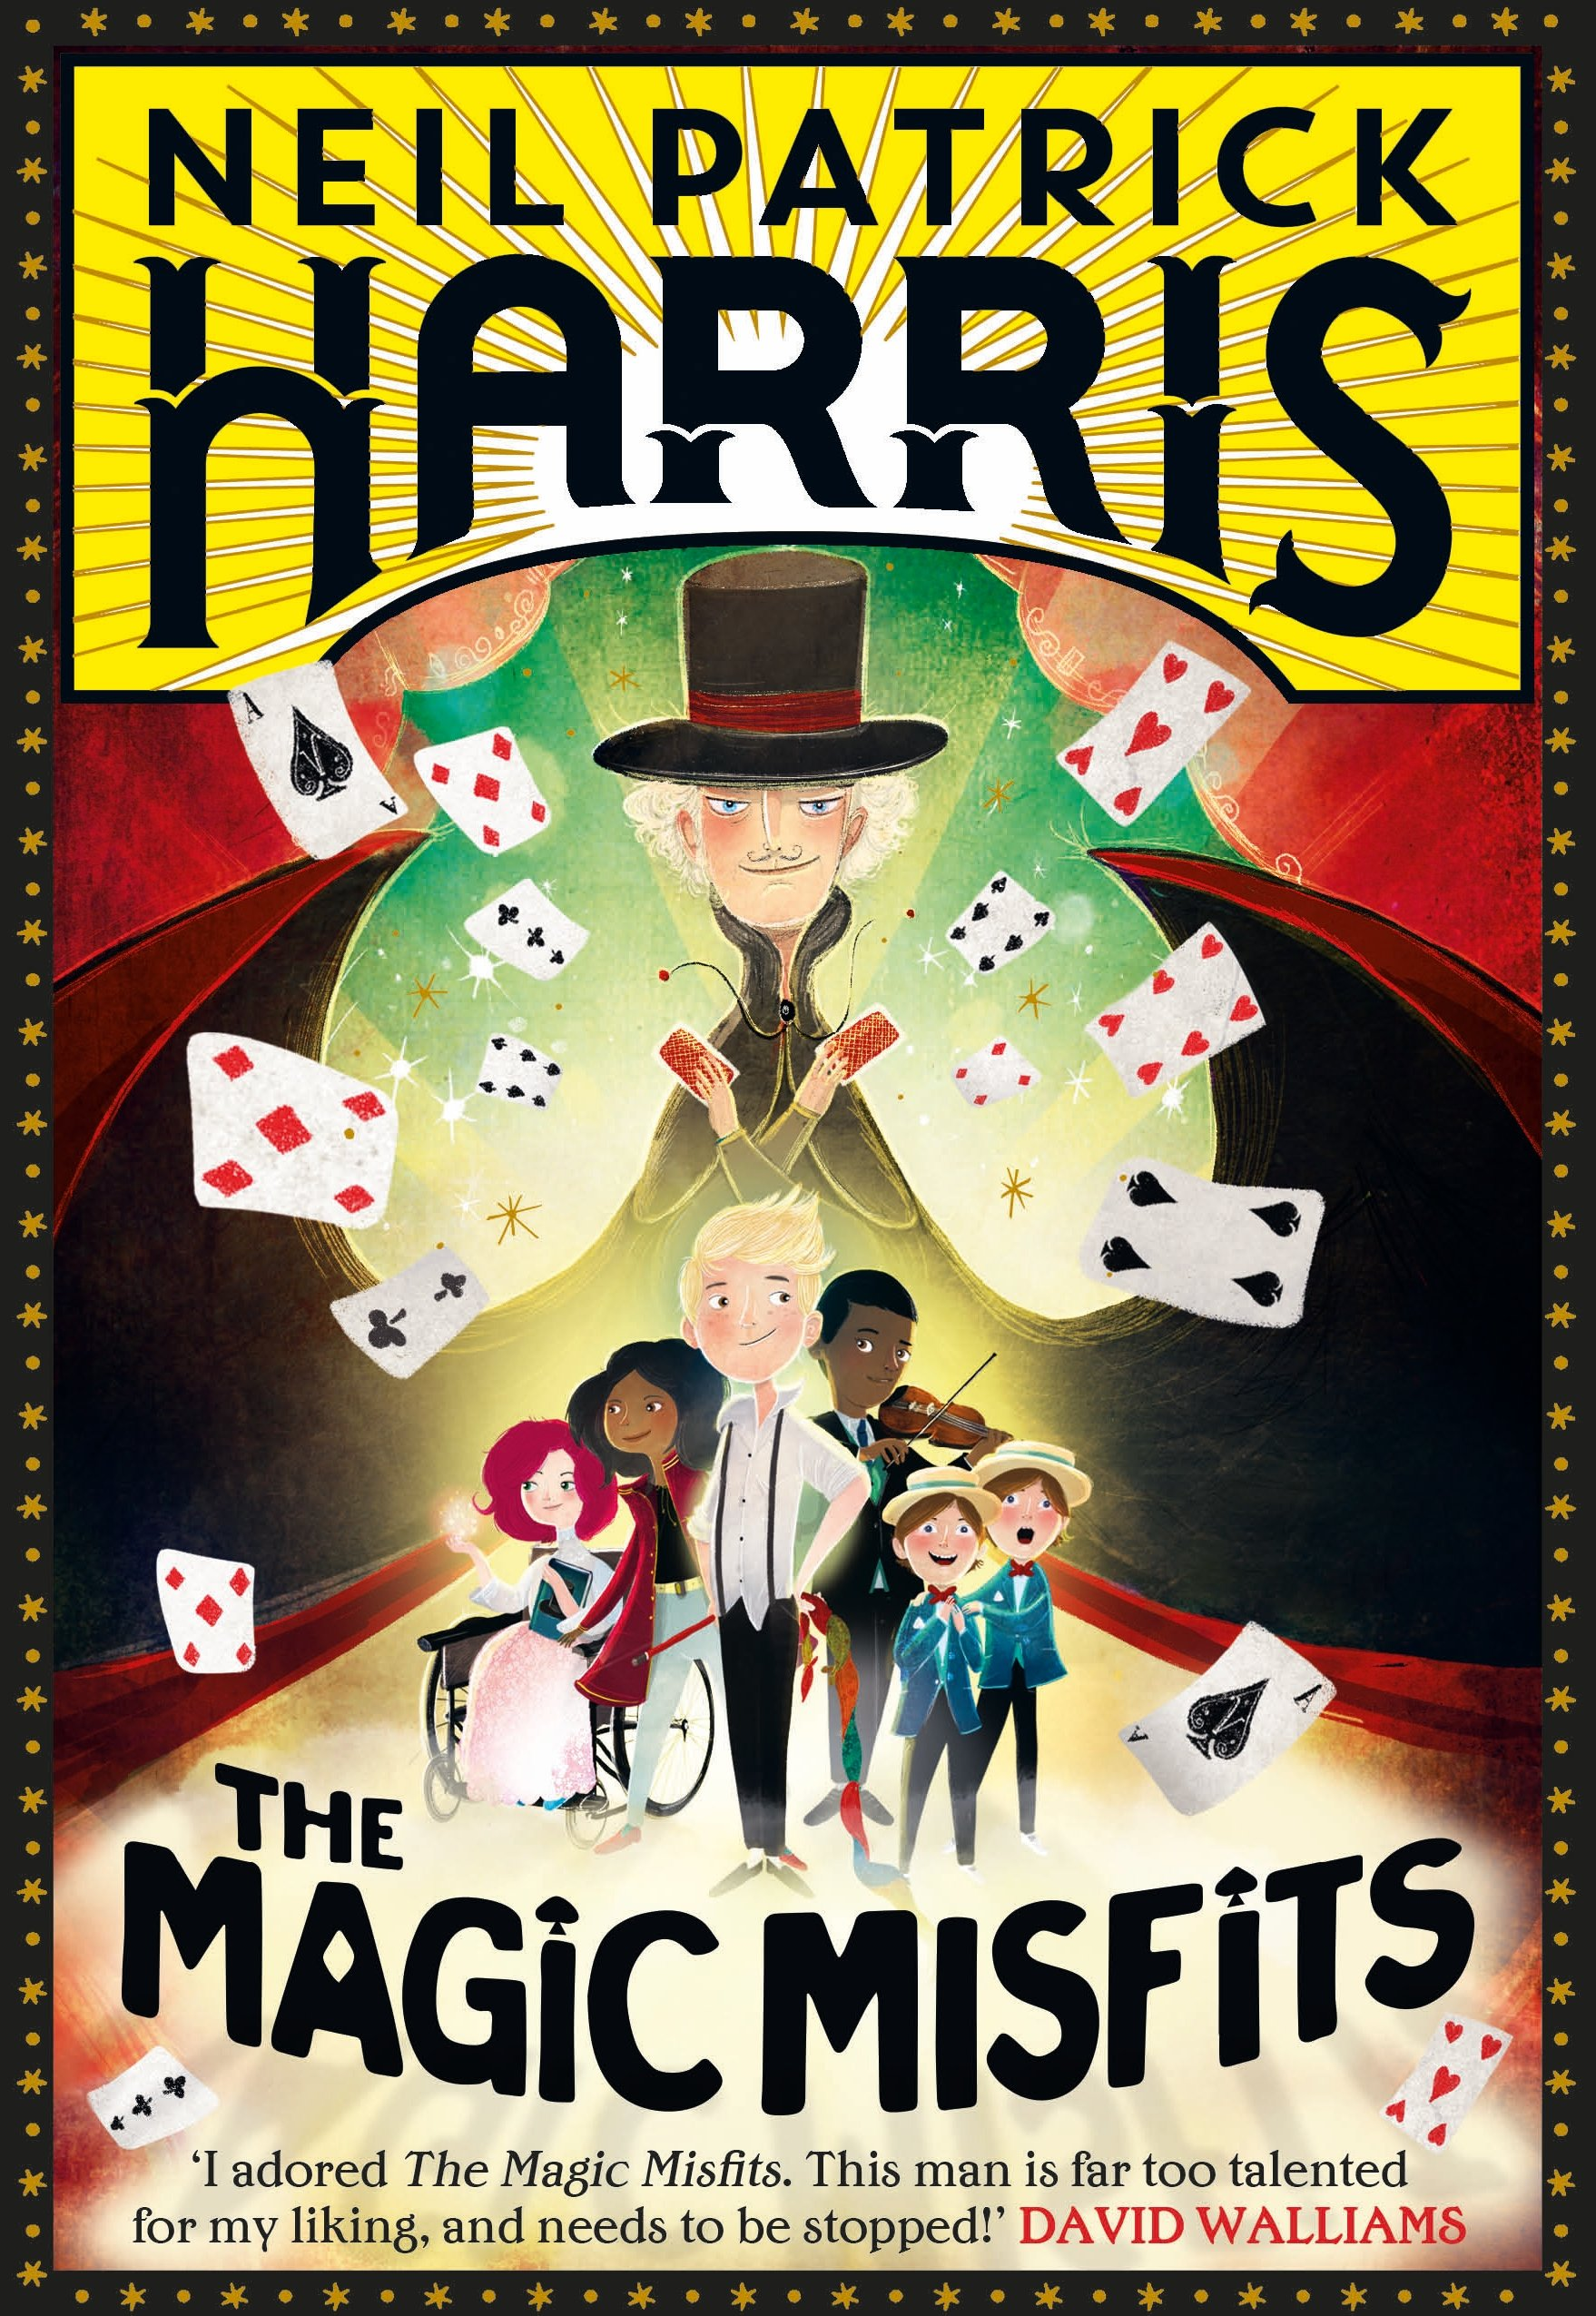 The Magic Misfits UK edition